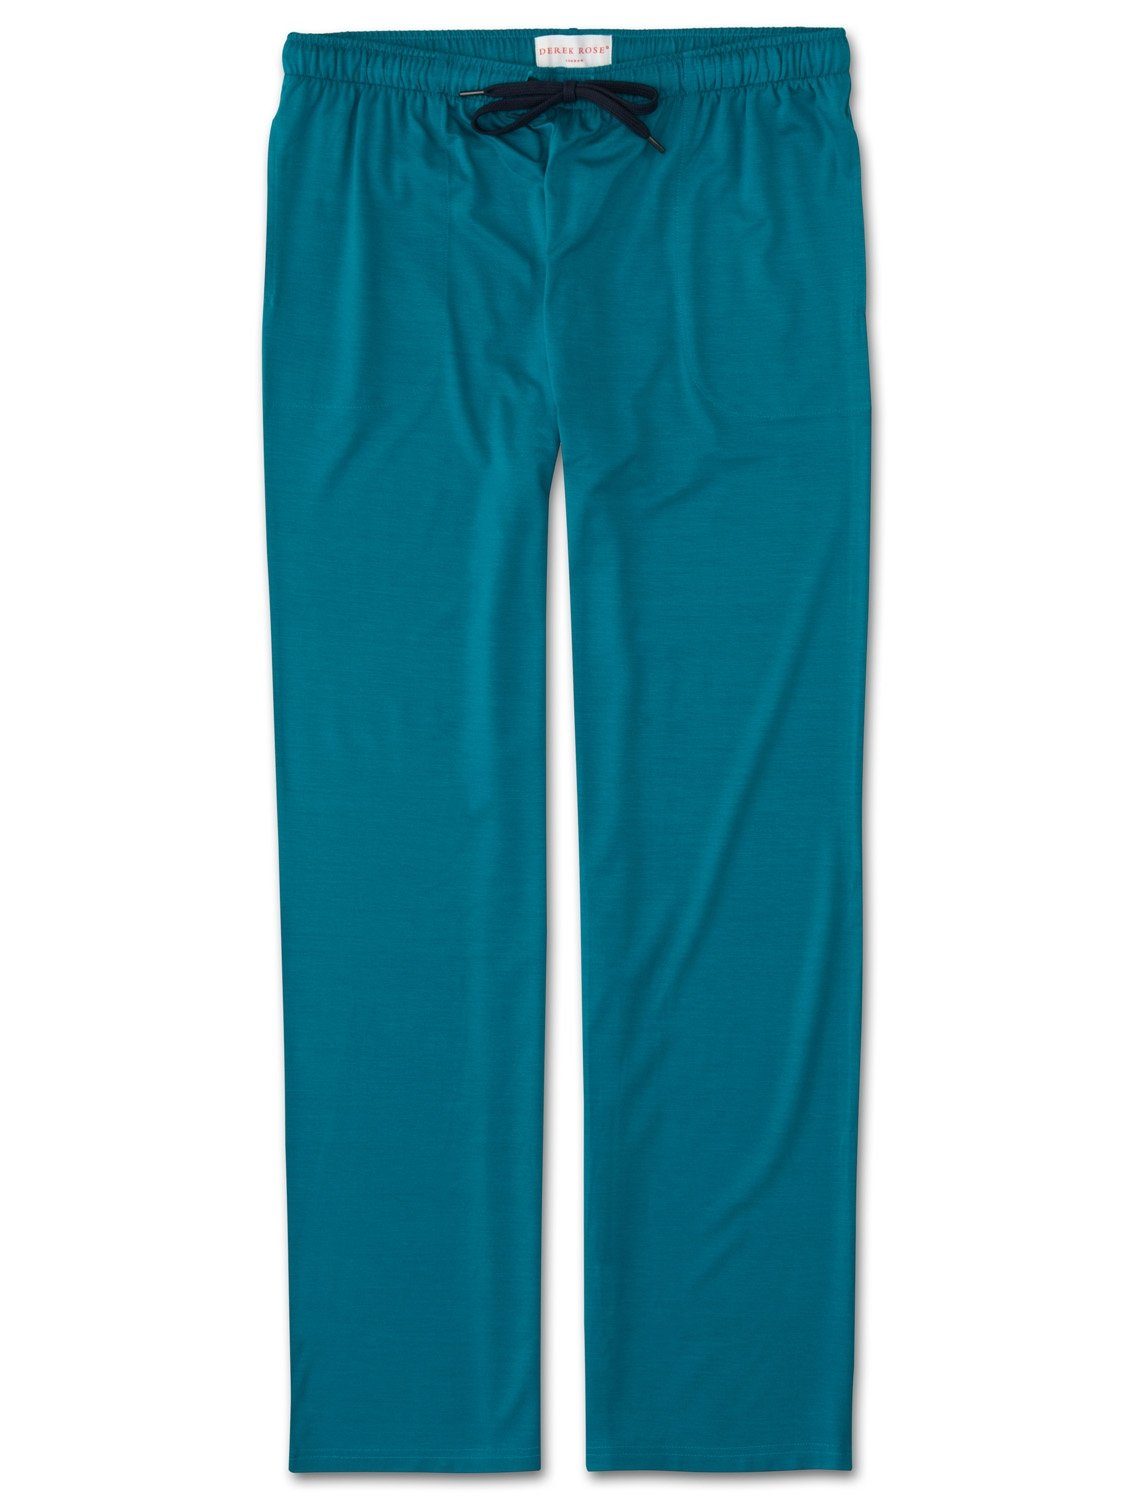 Men's Jersey Trousers Basel 4 Micro Modal Stretch Teal